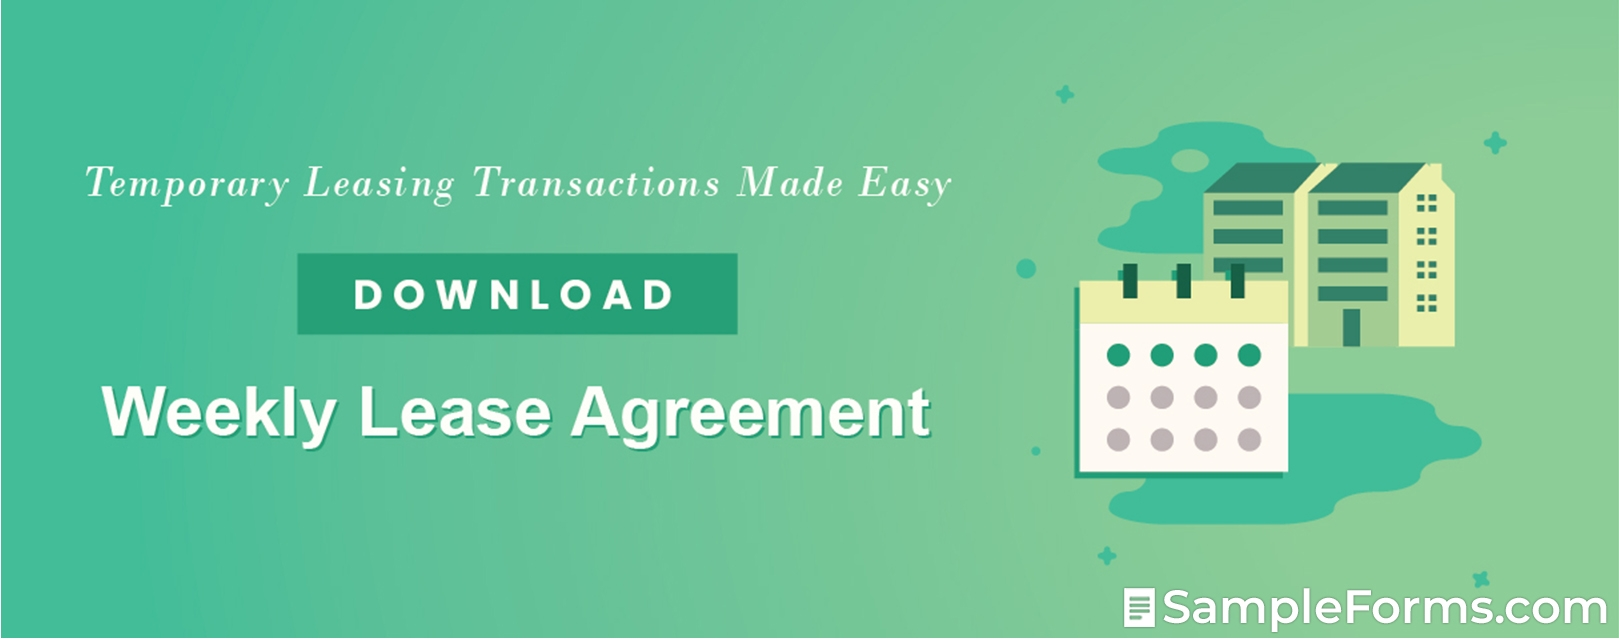 Weekly Lease Agreement1